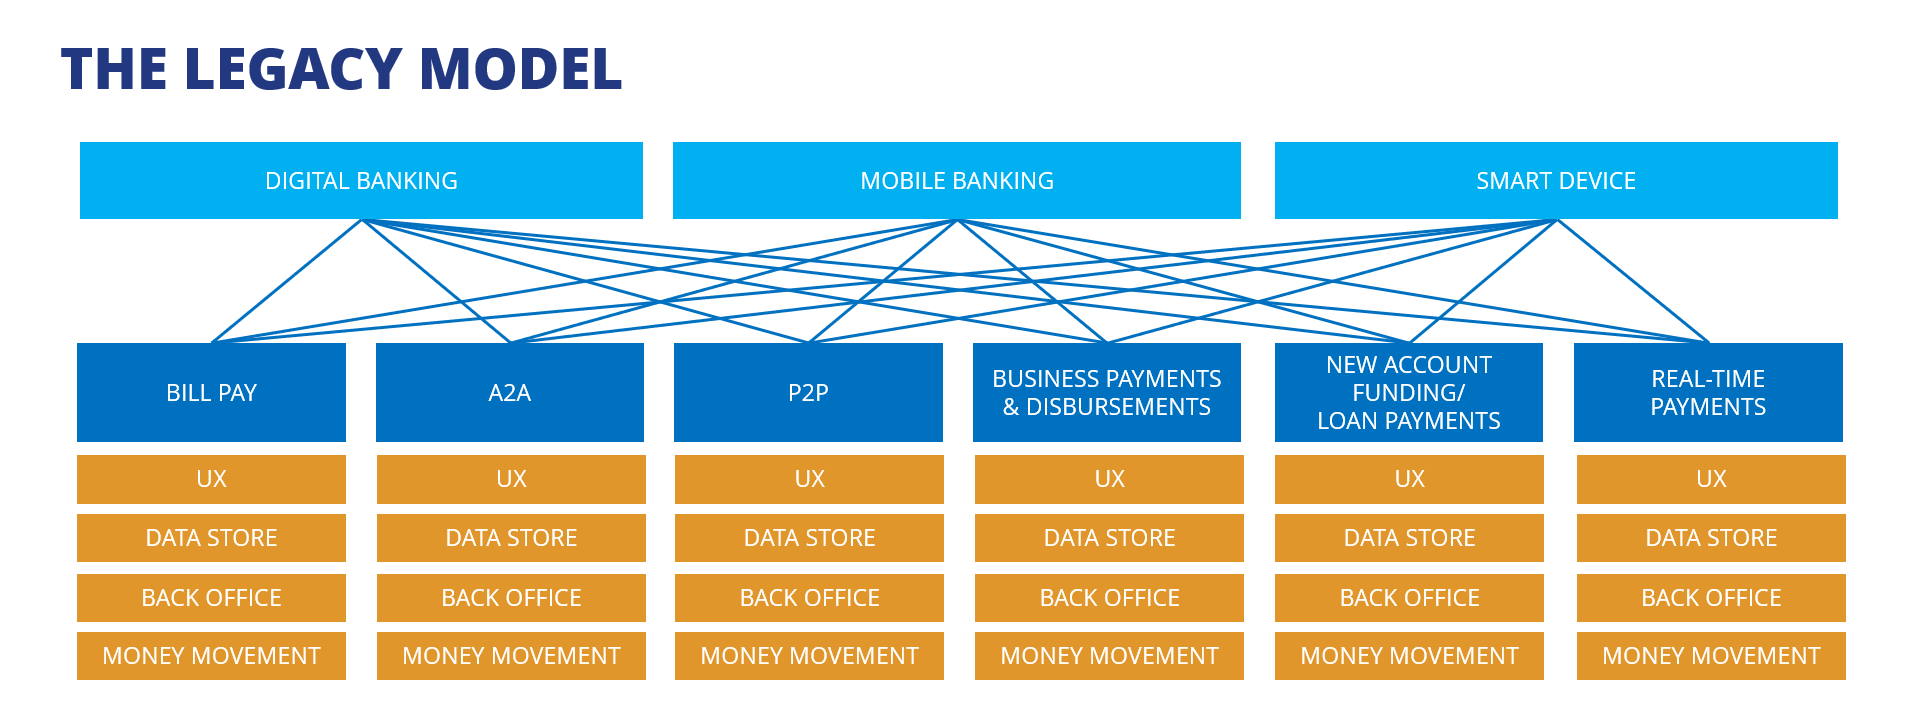 Highly over complicated legacy model of digital payment systems.